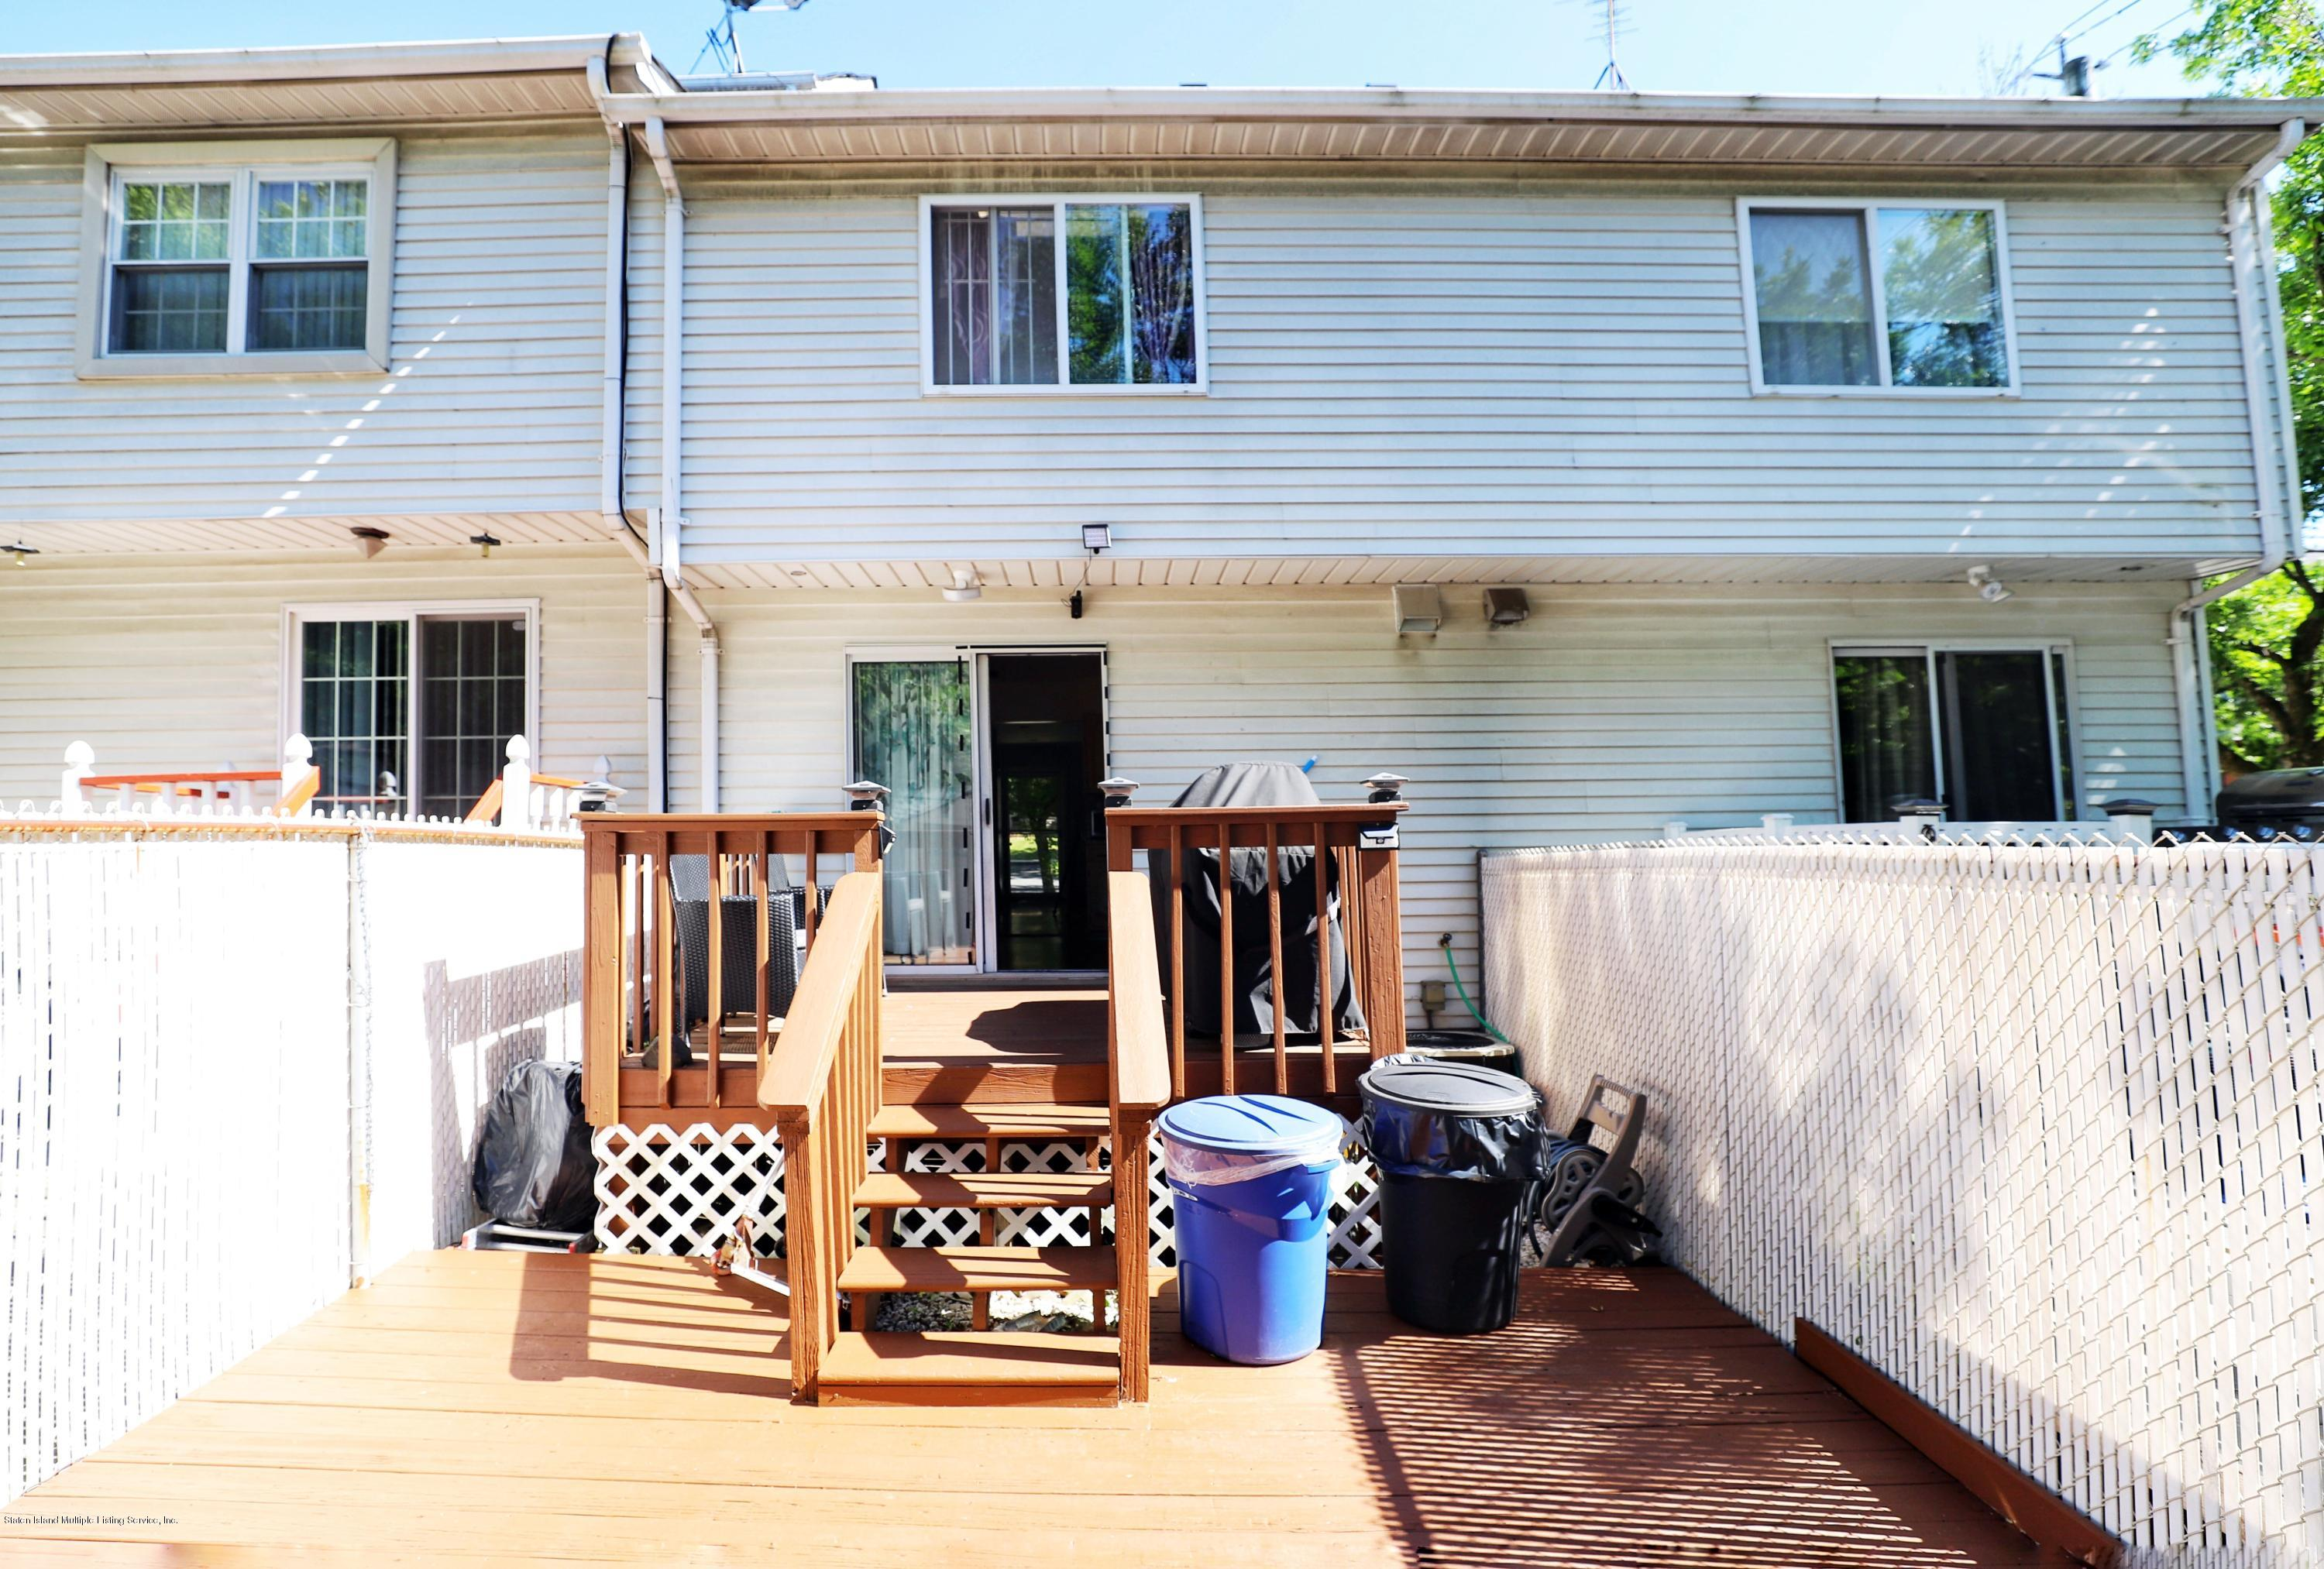 Single Family - Attached 16 Country Lane  Staten Island, NY 10312, MLS-1129780-12